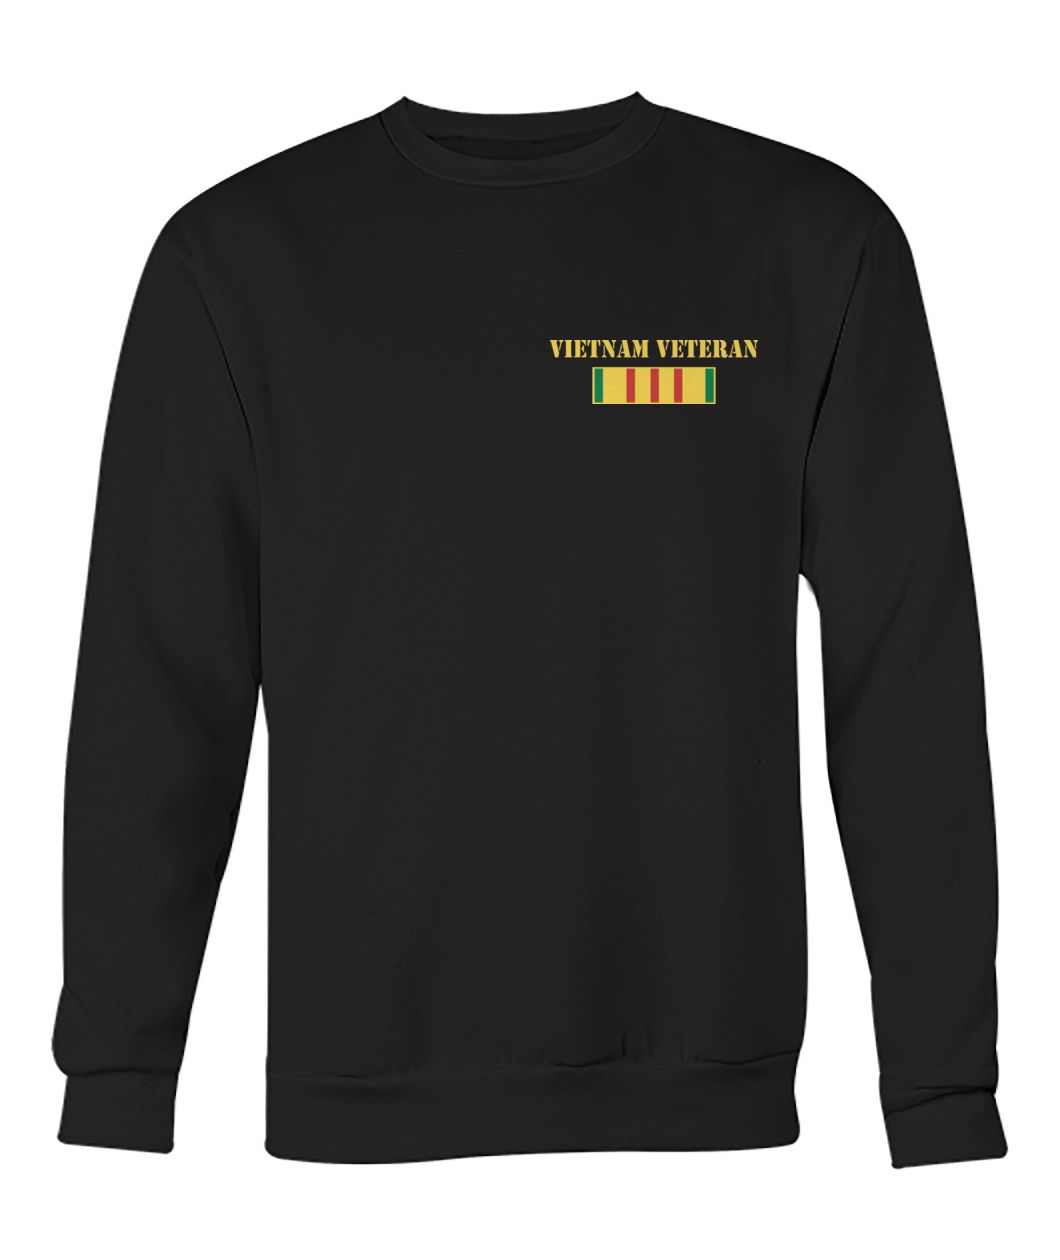 WE WERE THE BEST AMERICA HAD- Vietnam Veterans of America - Crew Neck Sweatshirt